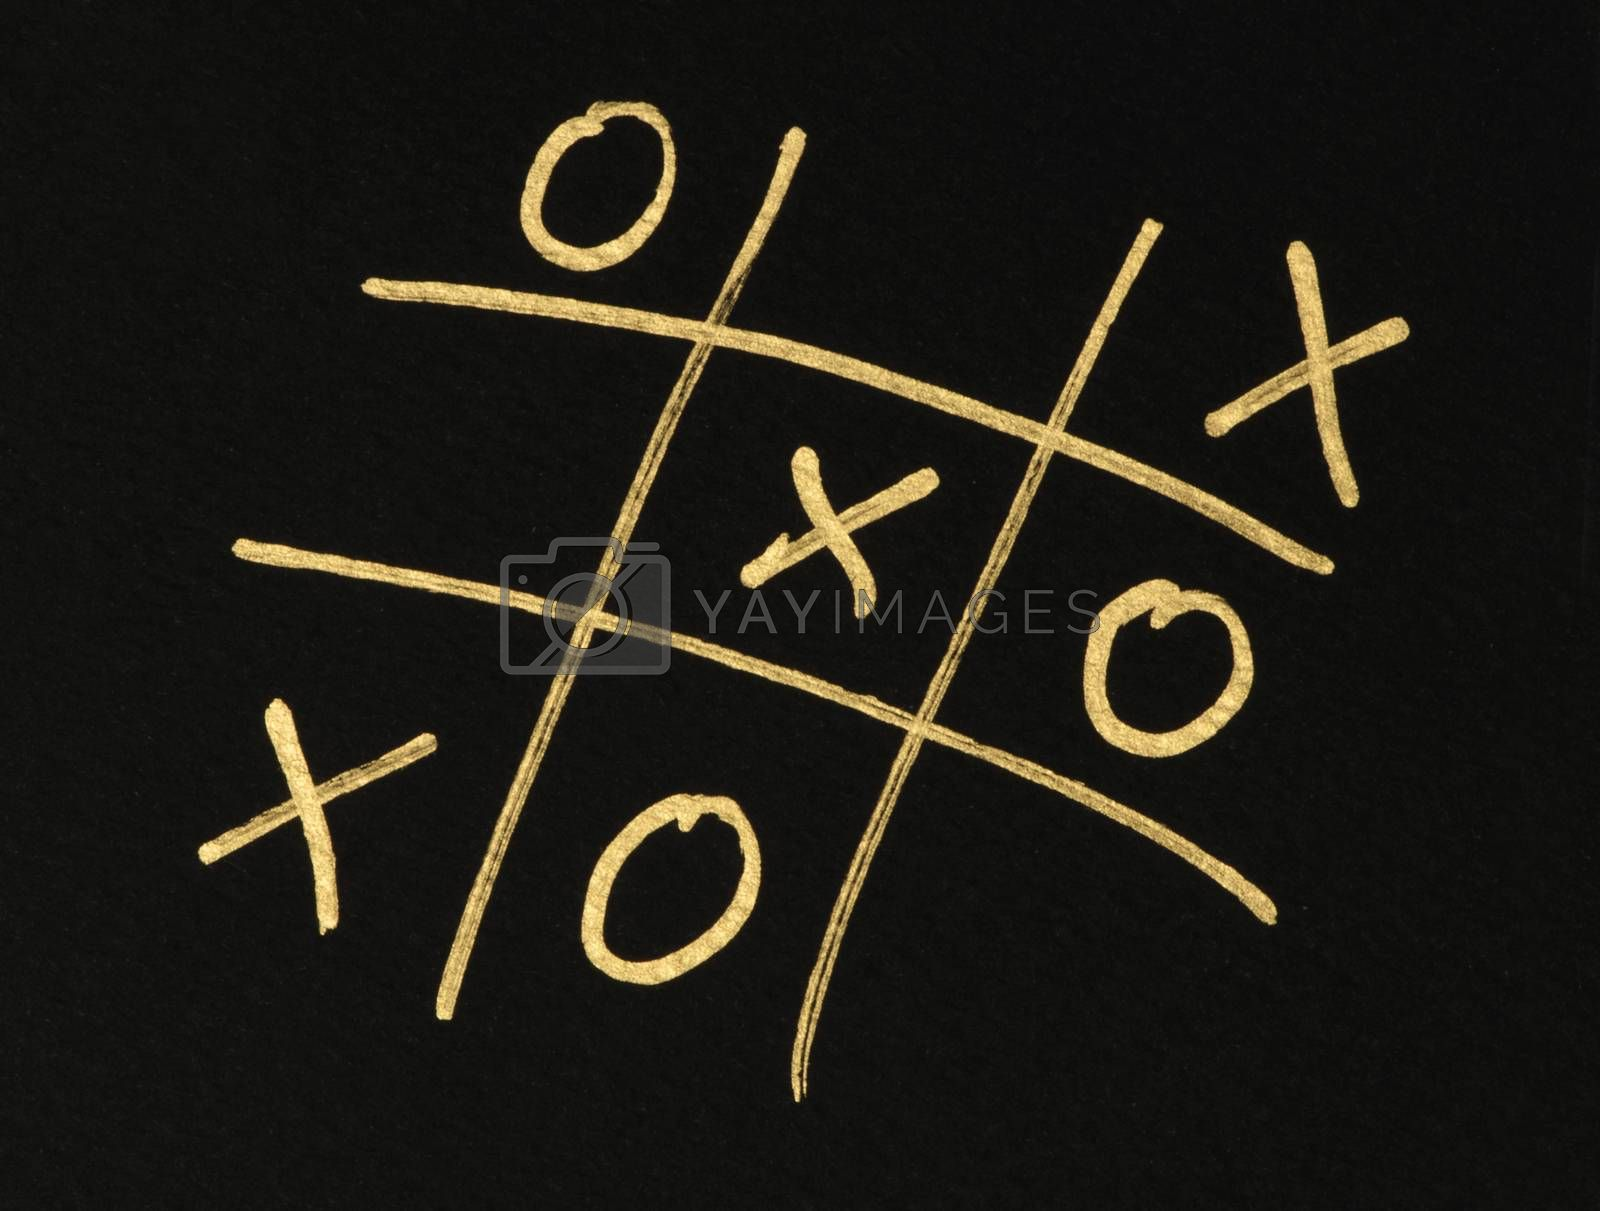 Hand-drawn tic-tac-toe game. Gold color text over black